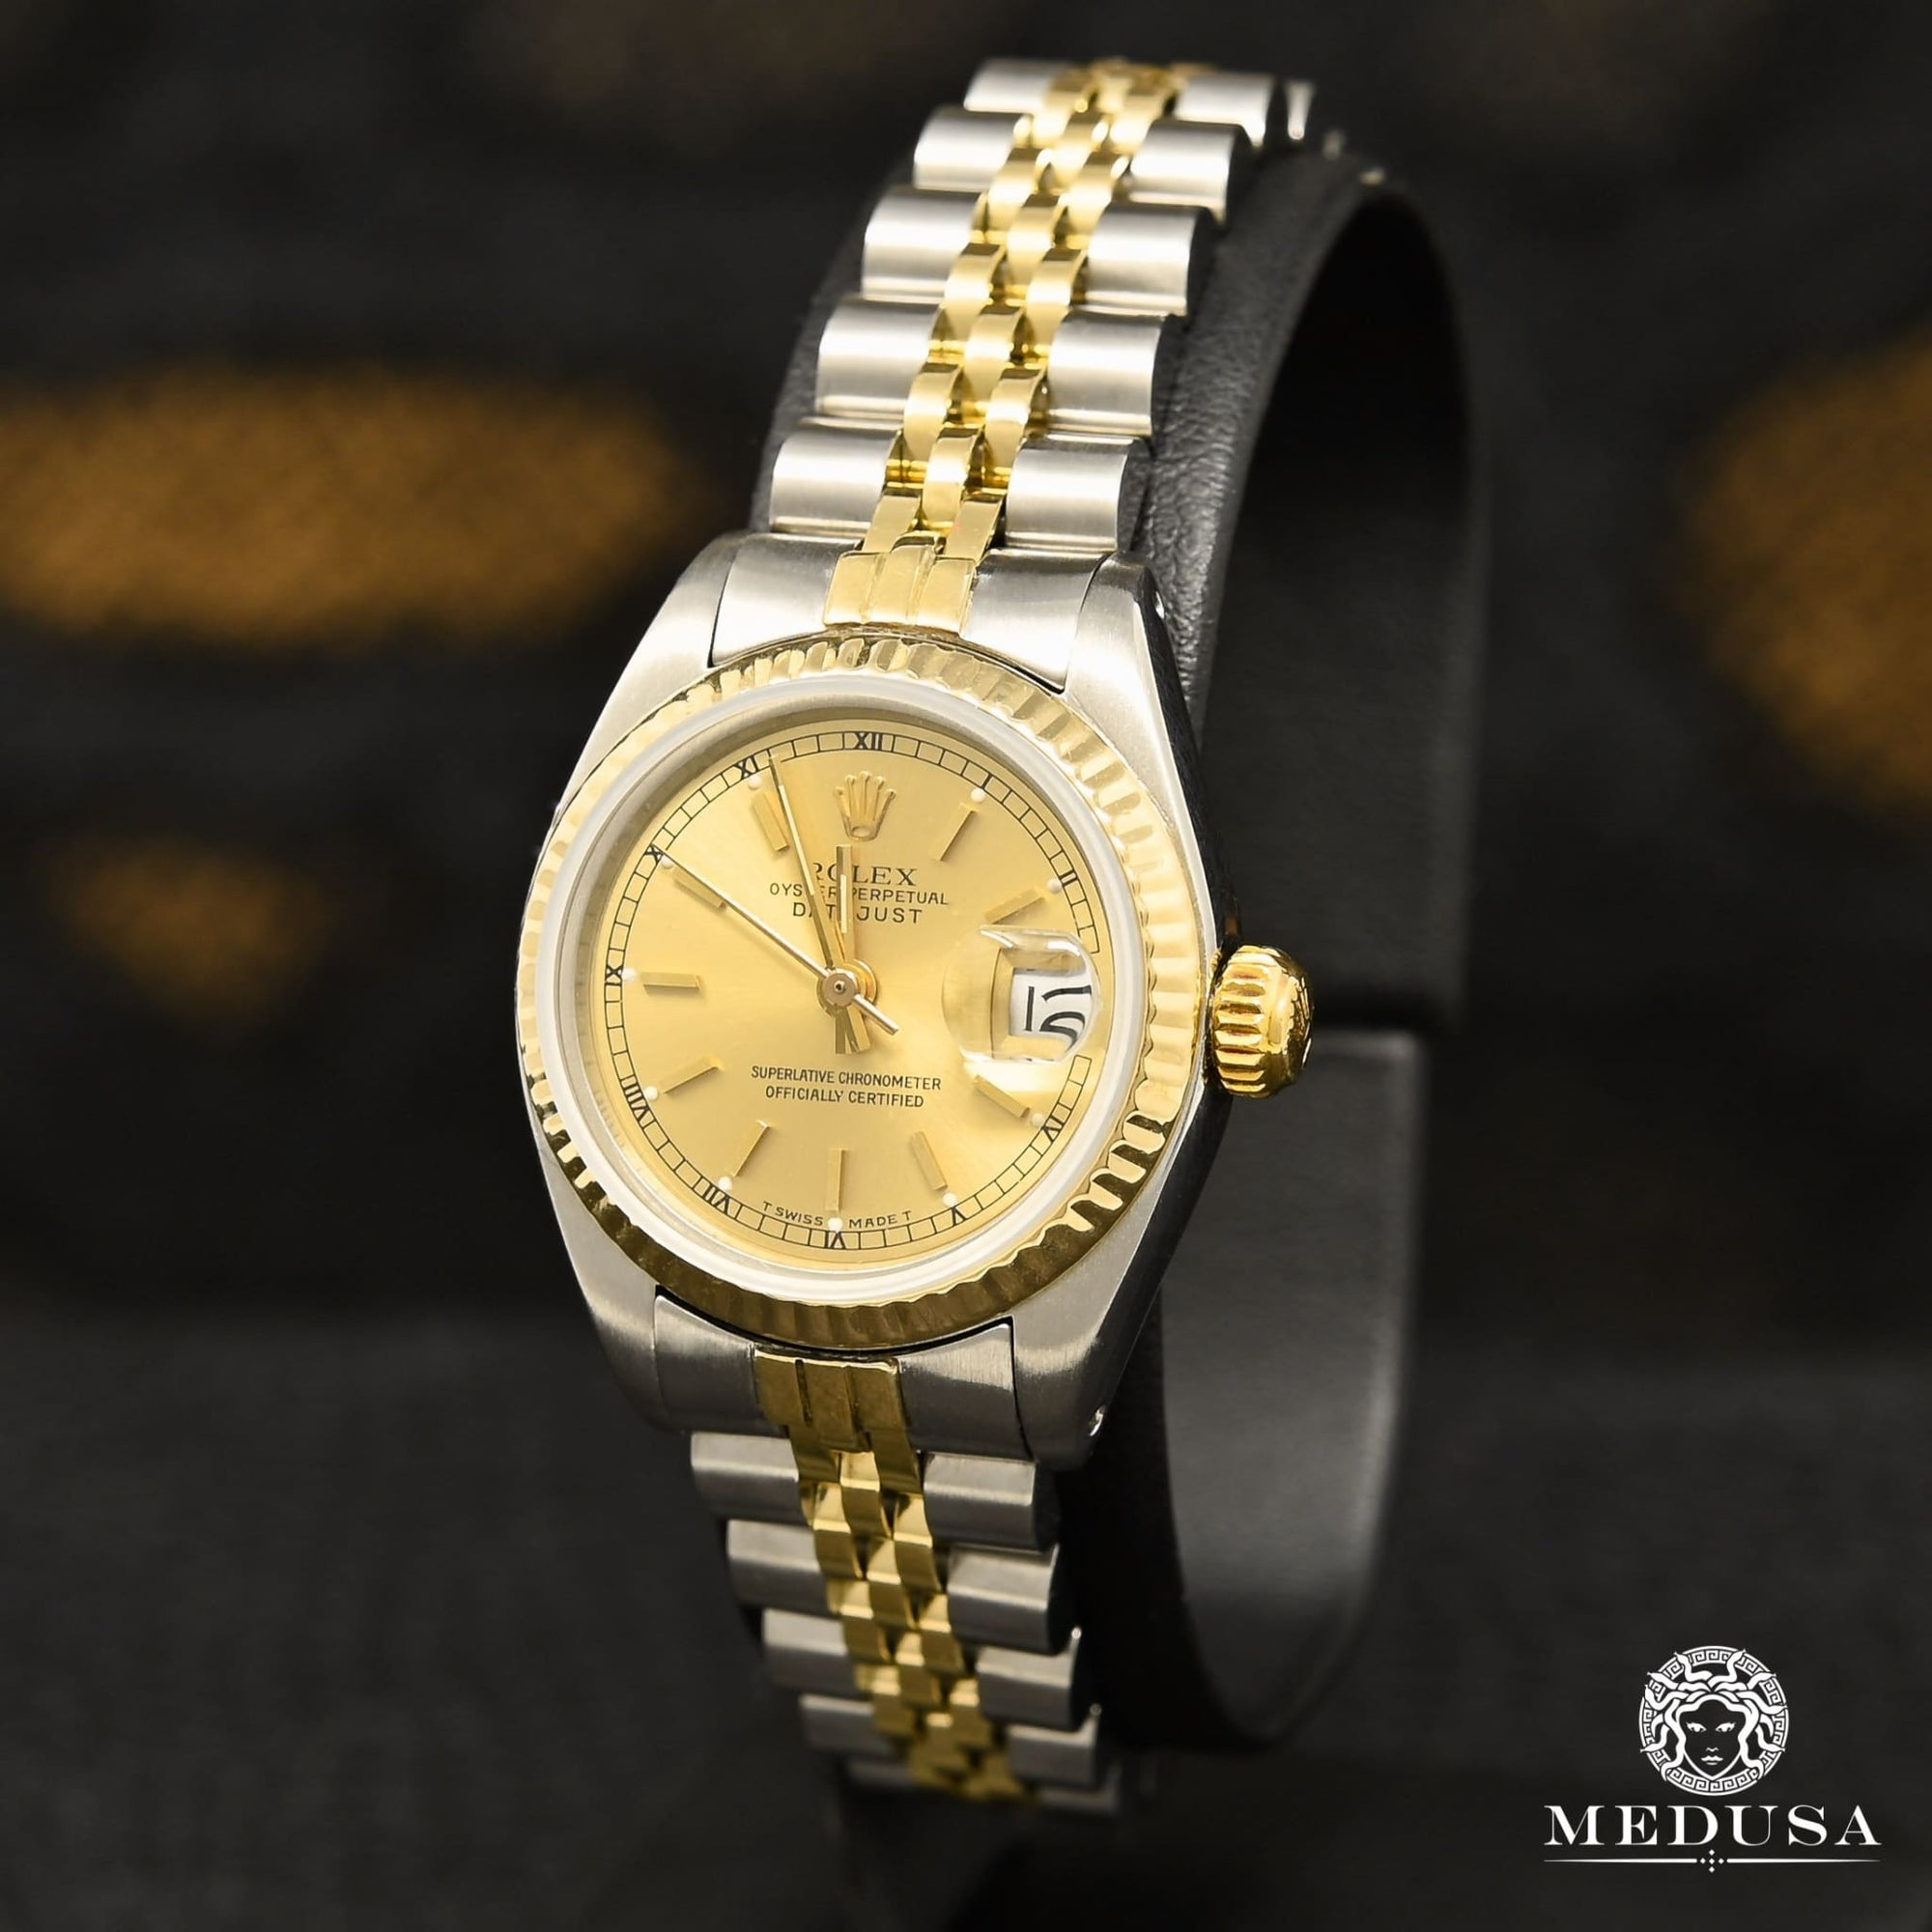 Montre Rolex | Montre Femme Rolex Datejust 26mm - Gold Or 2 Tons